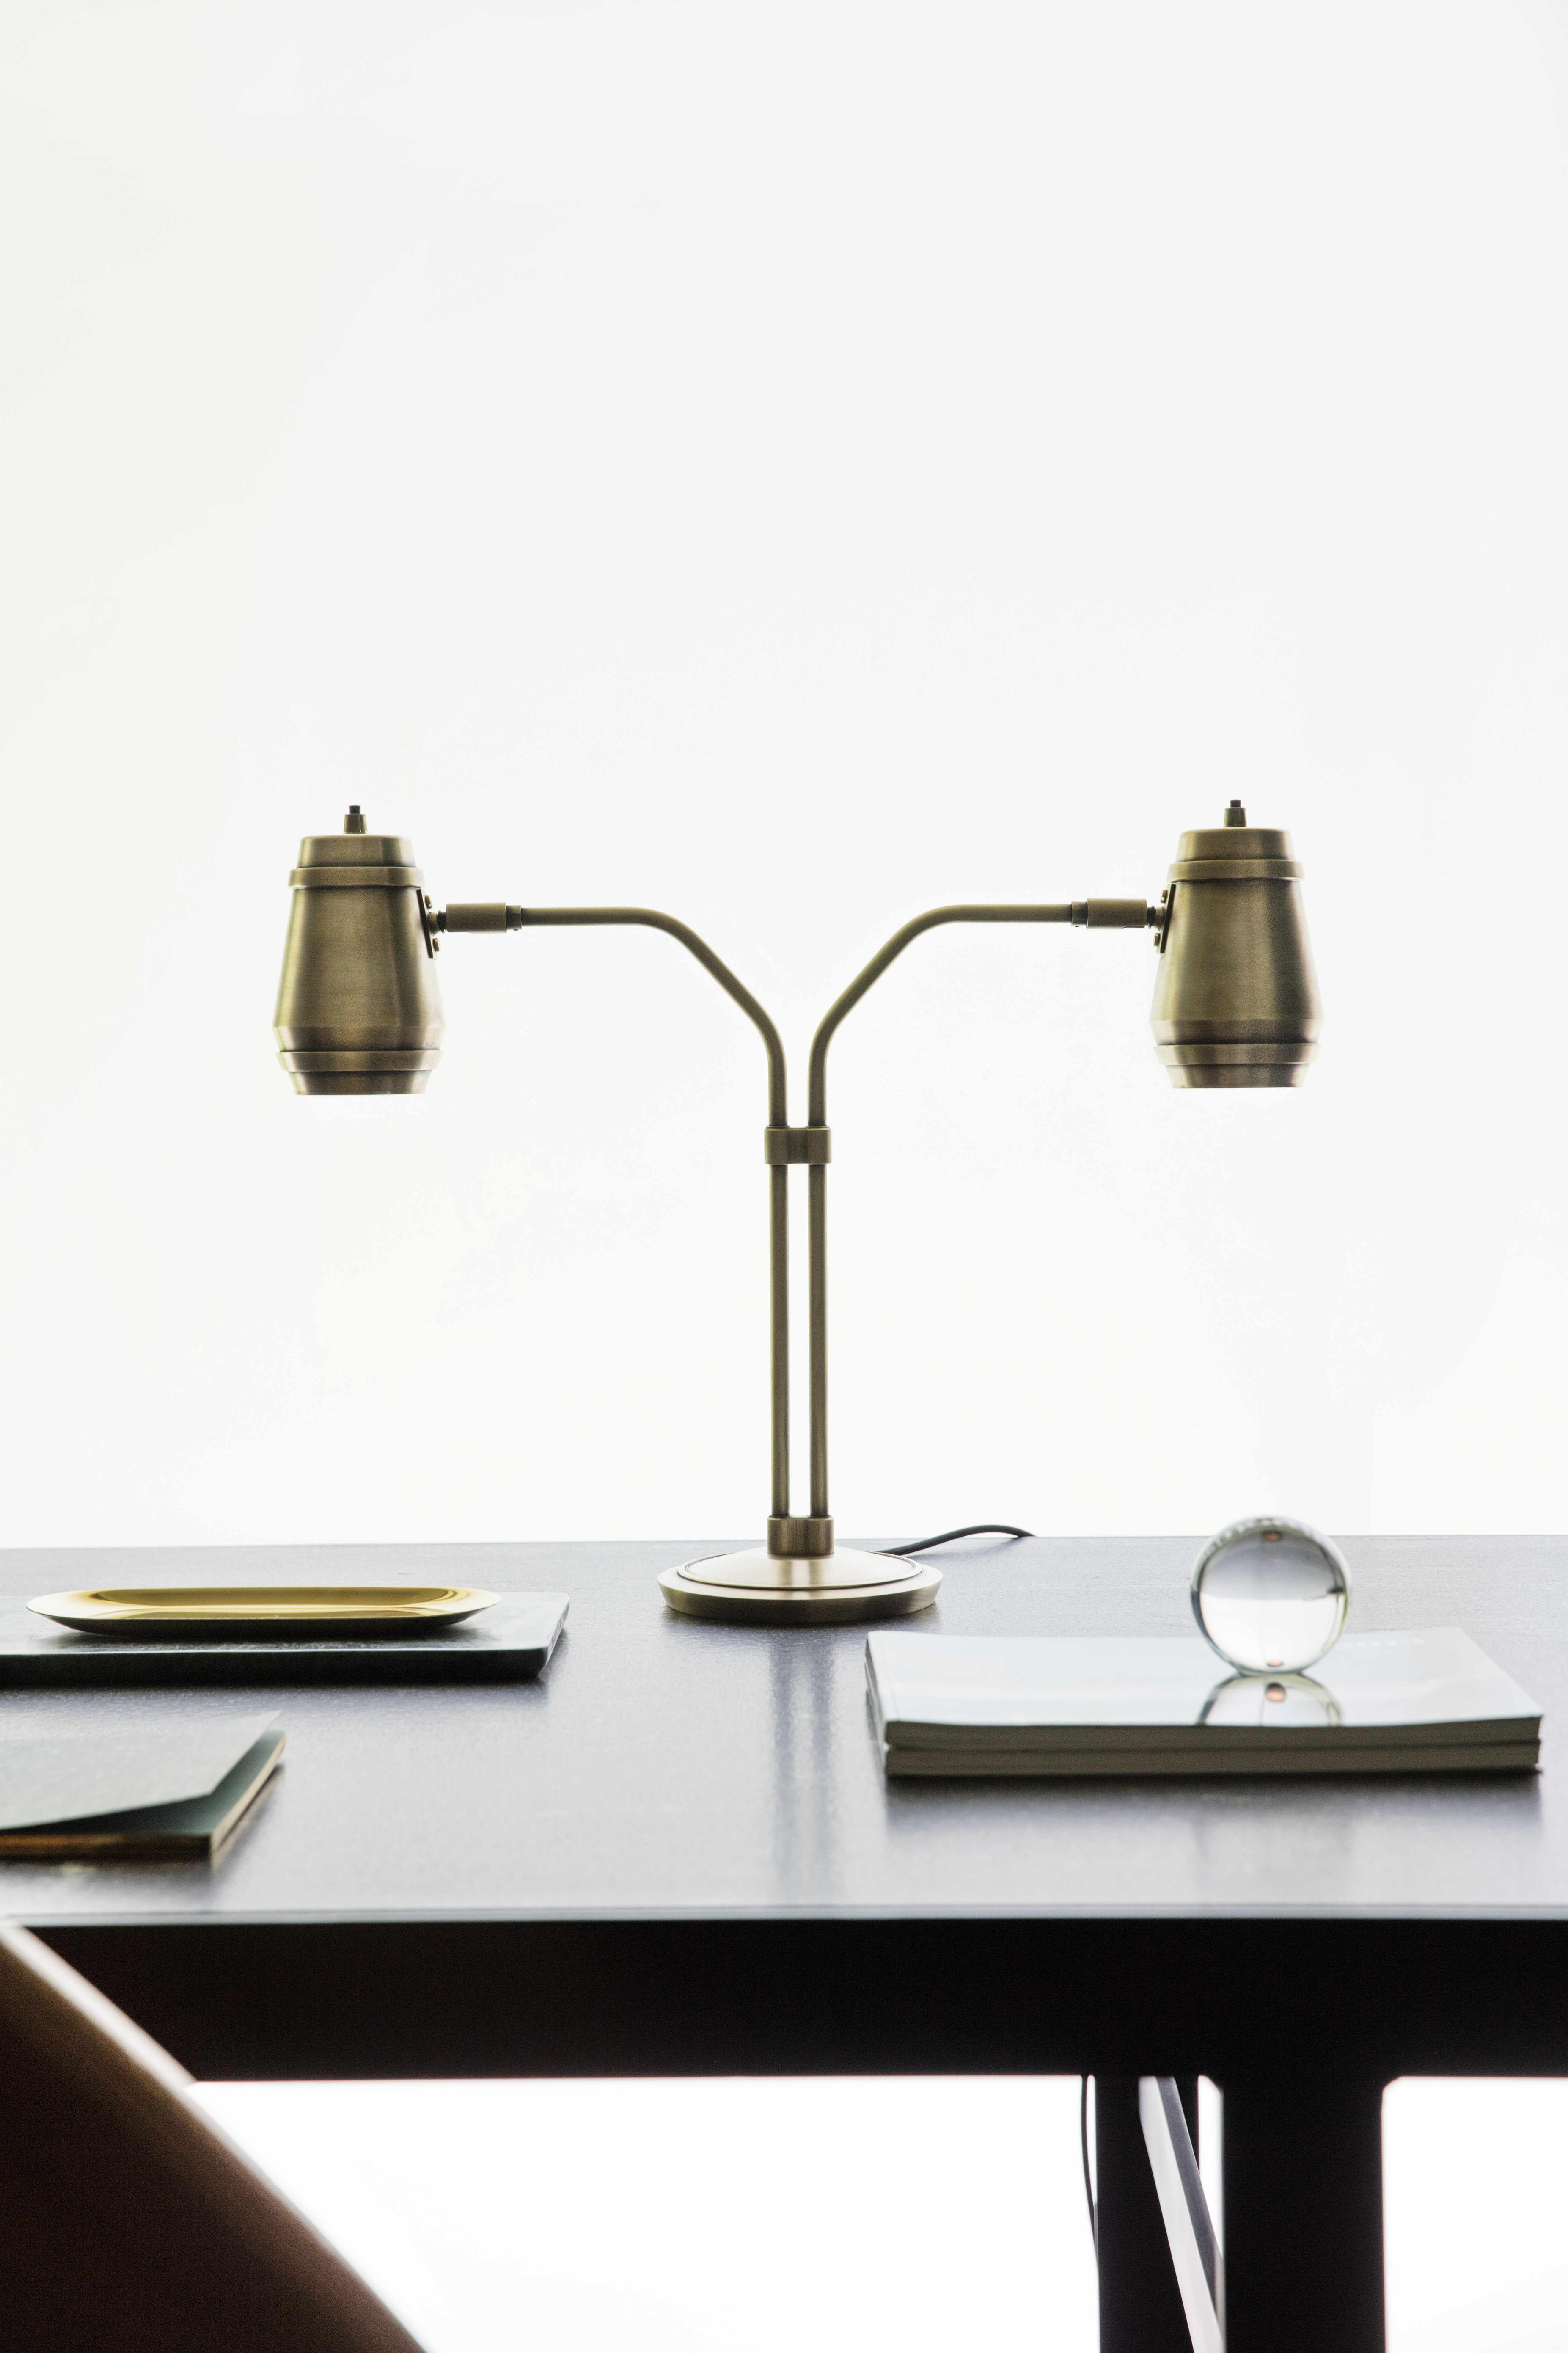 Cask Table Lamp - <p><span>The timeless look of the Cask Table Lamp is enhanced by hand-finished brass. Twin arms and symmetrical cask shades make this industrial-inspired design an eye-catching yet practical task light. </p> <p></span></p>  | Matter of Stuff